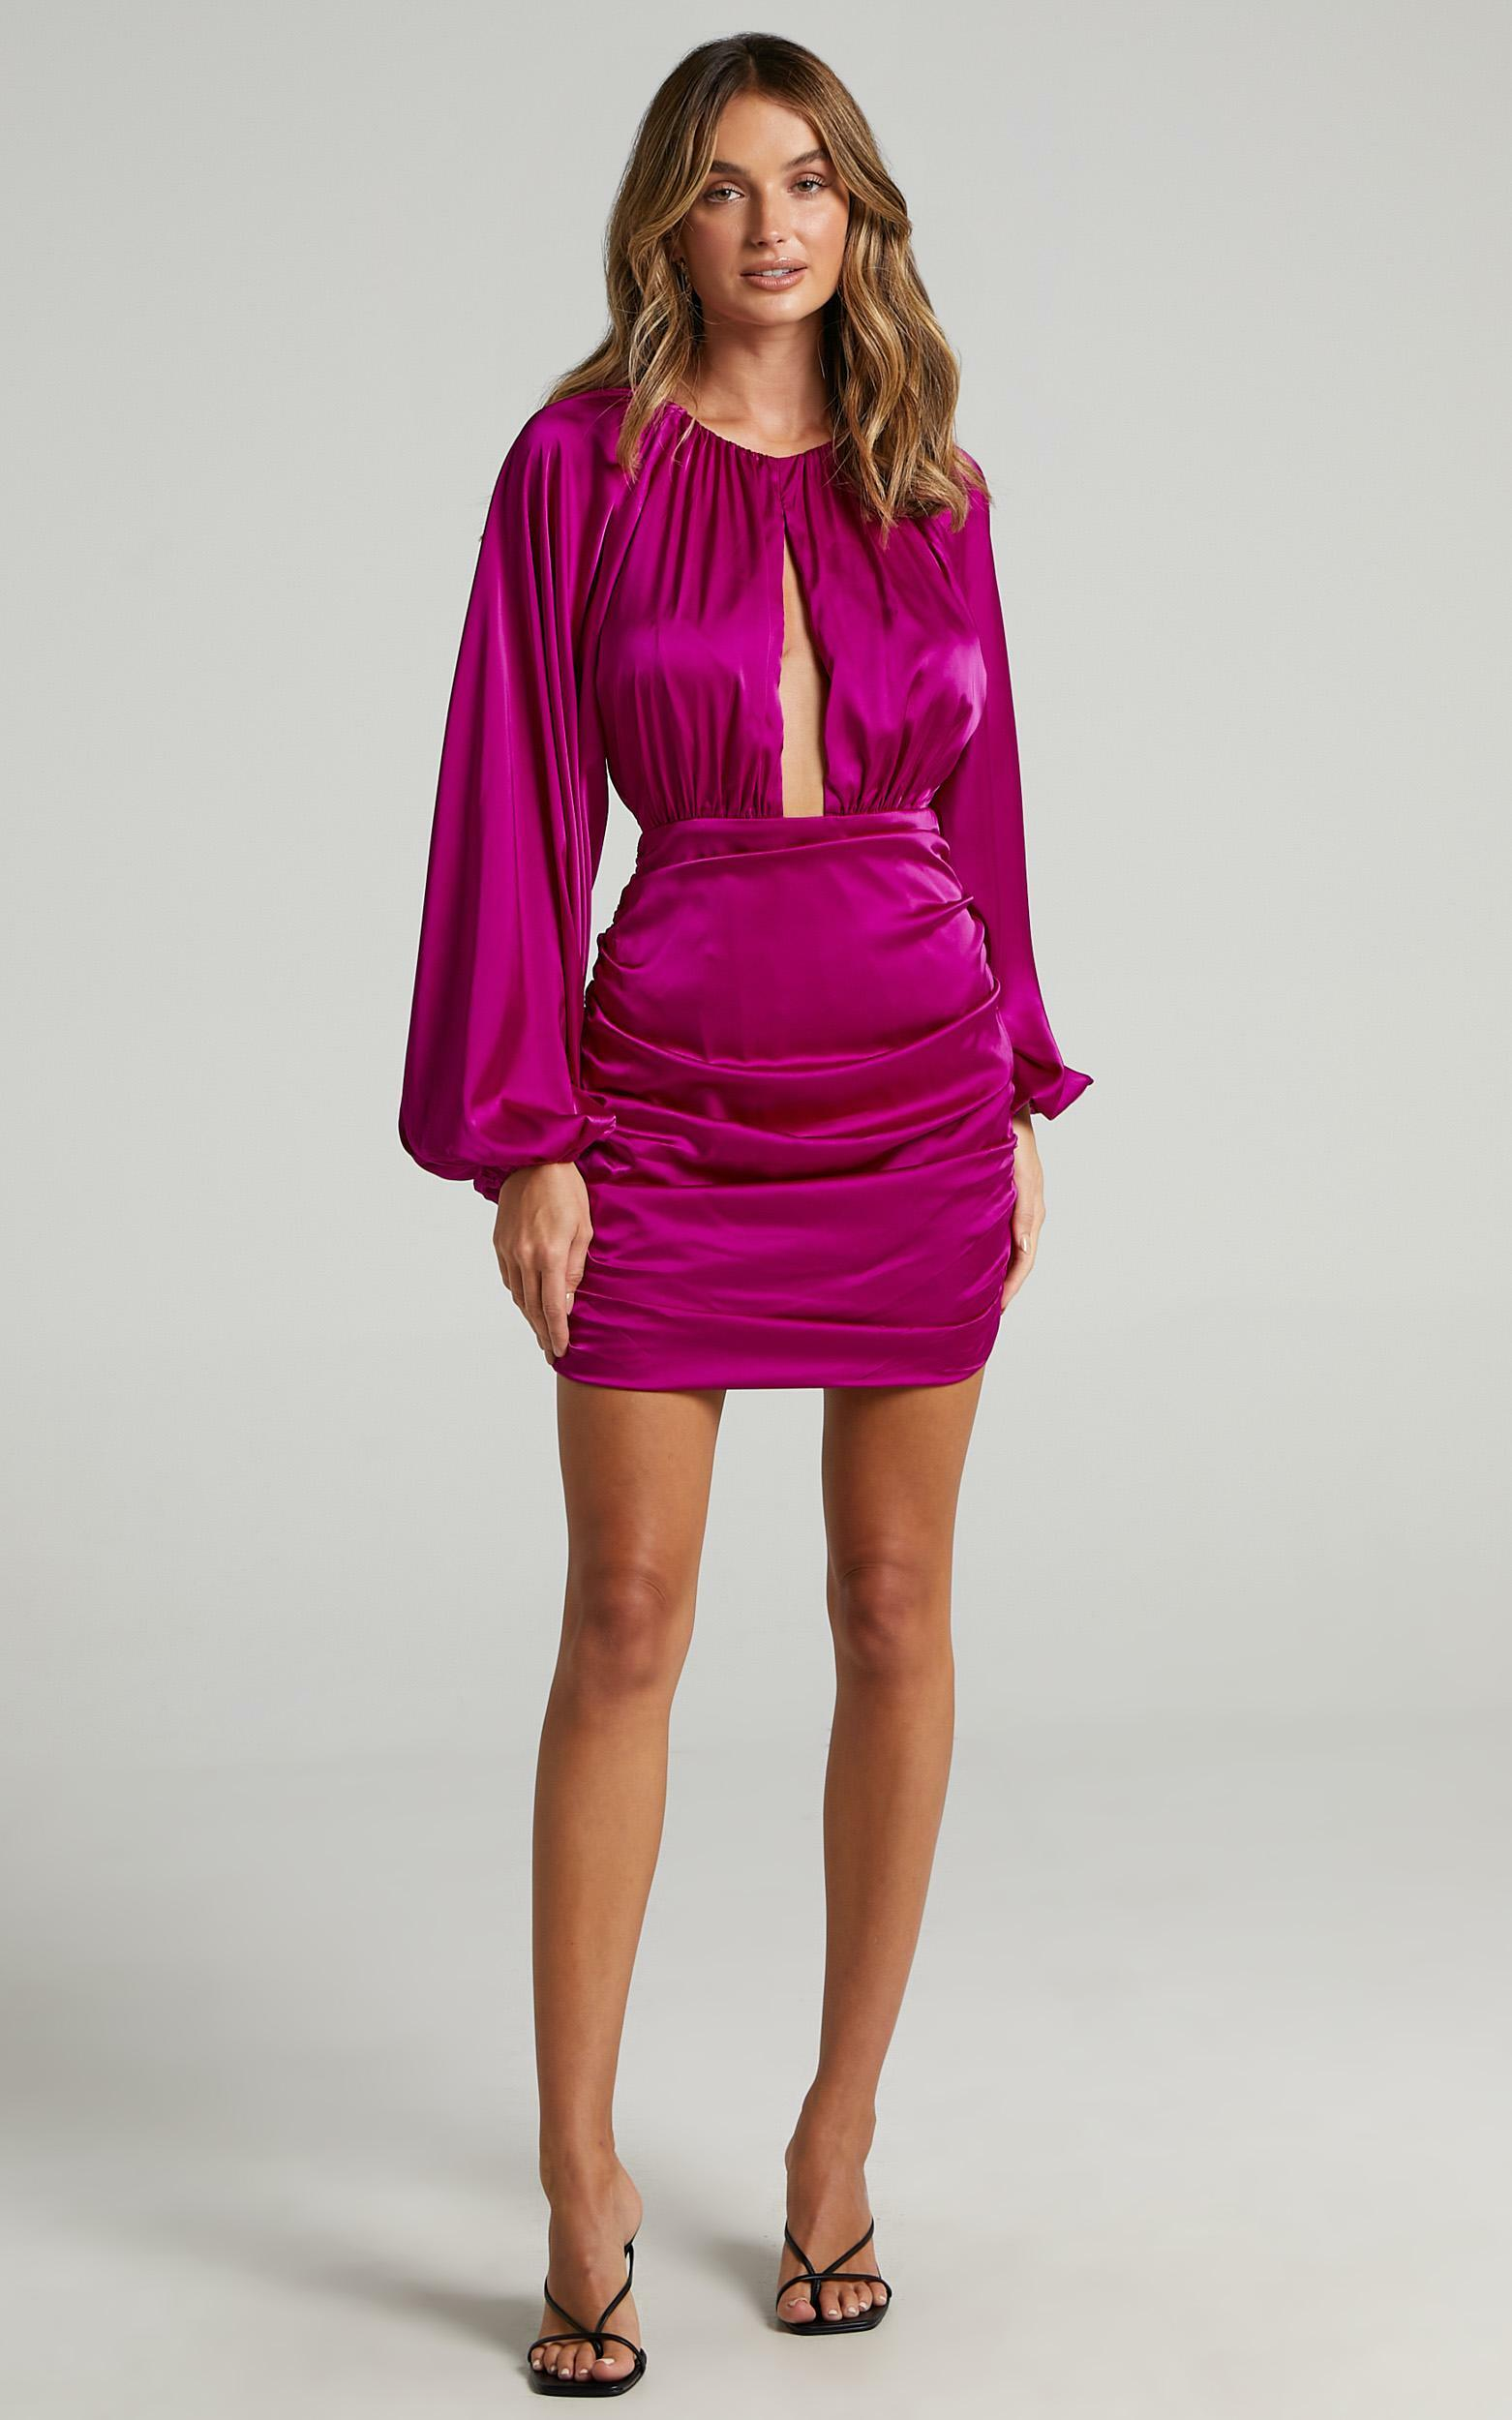 Ata Dress in Mulberry Satin - 6 (XS), Purple, hi-res image number null